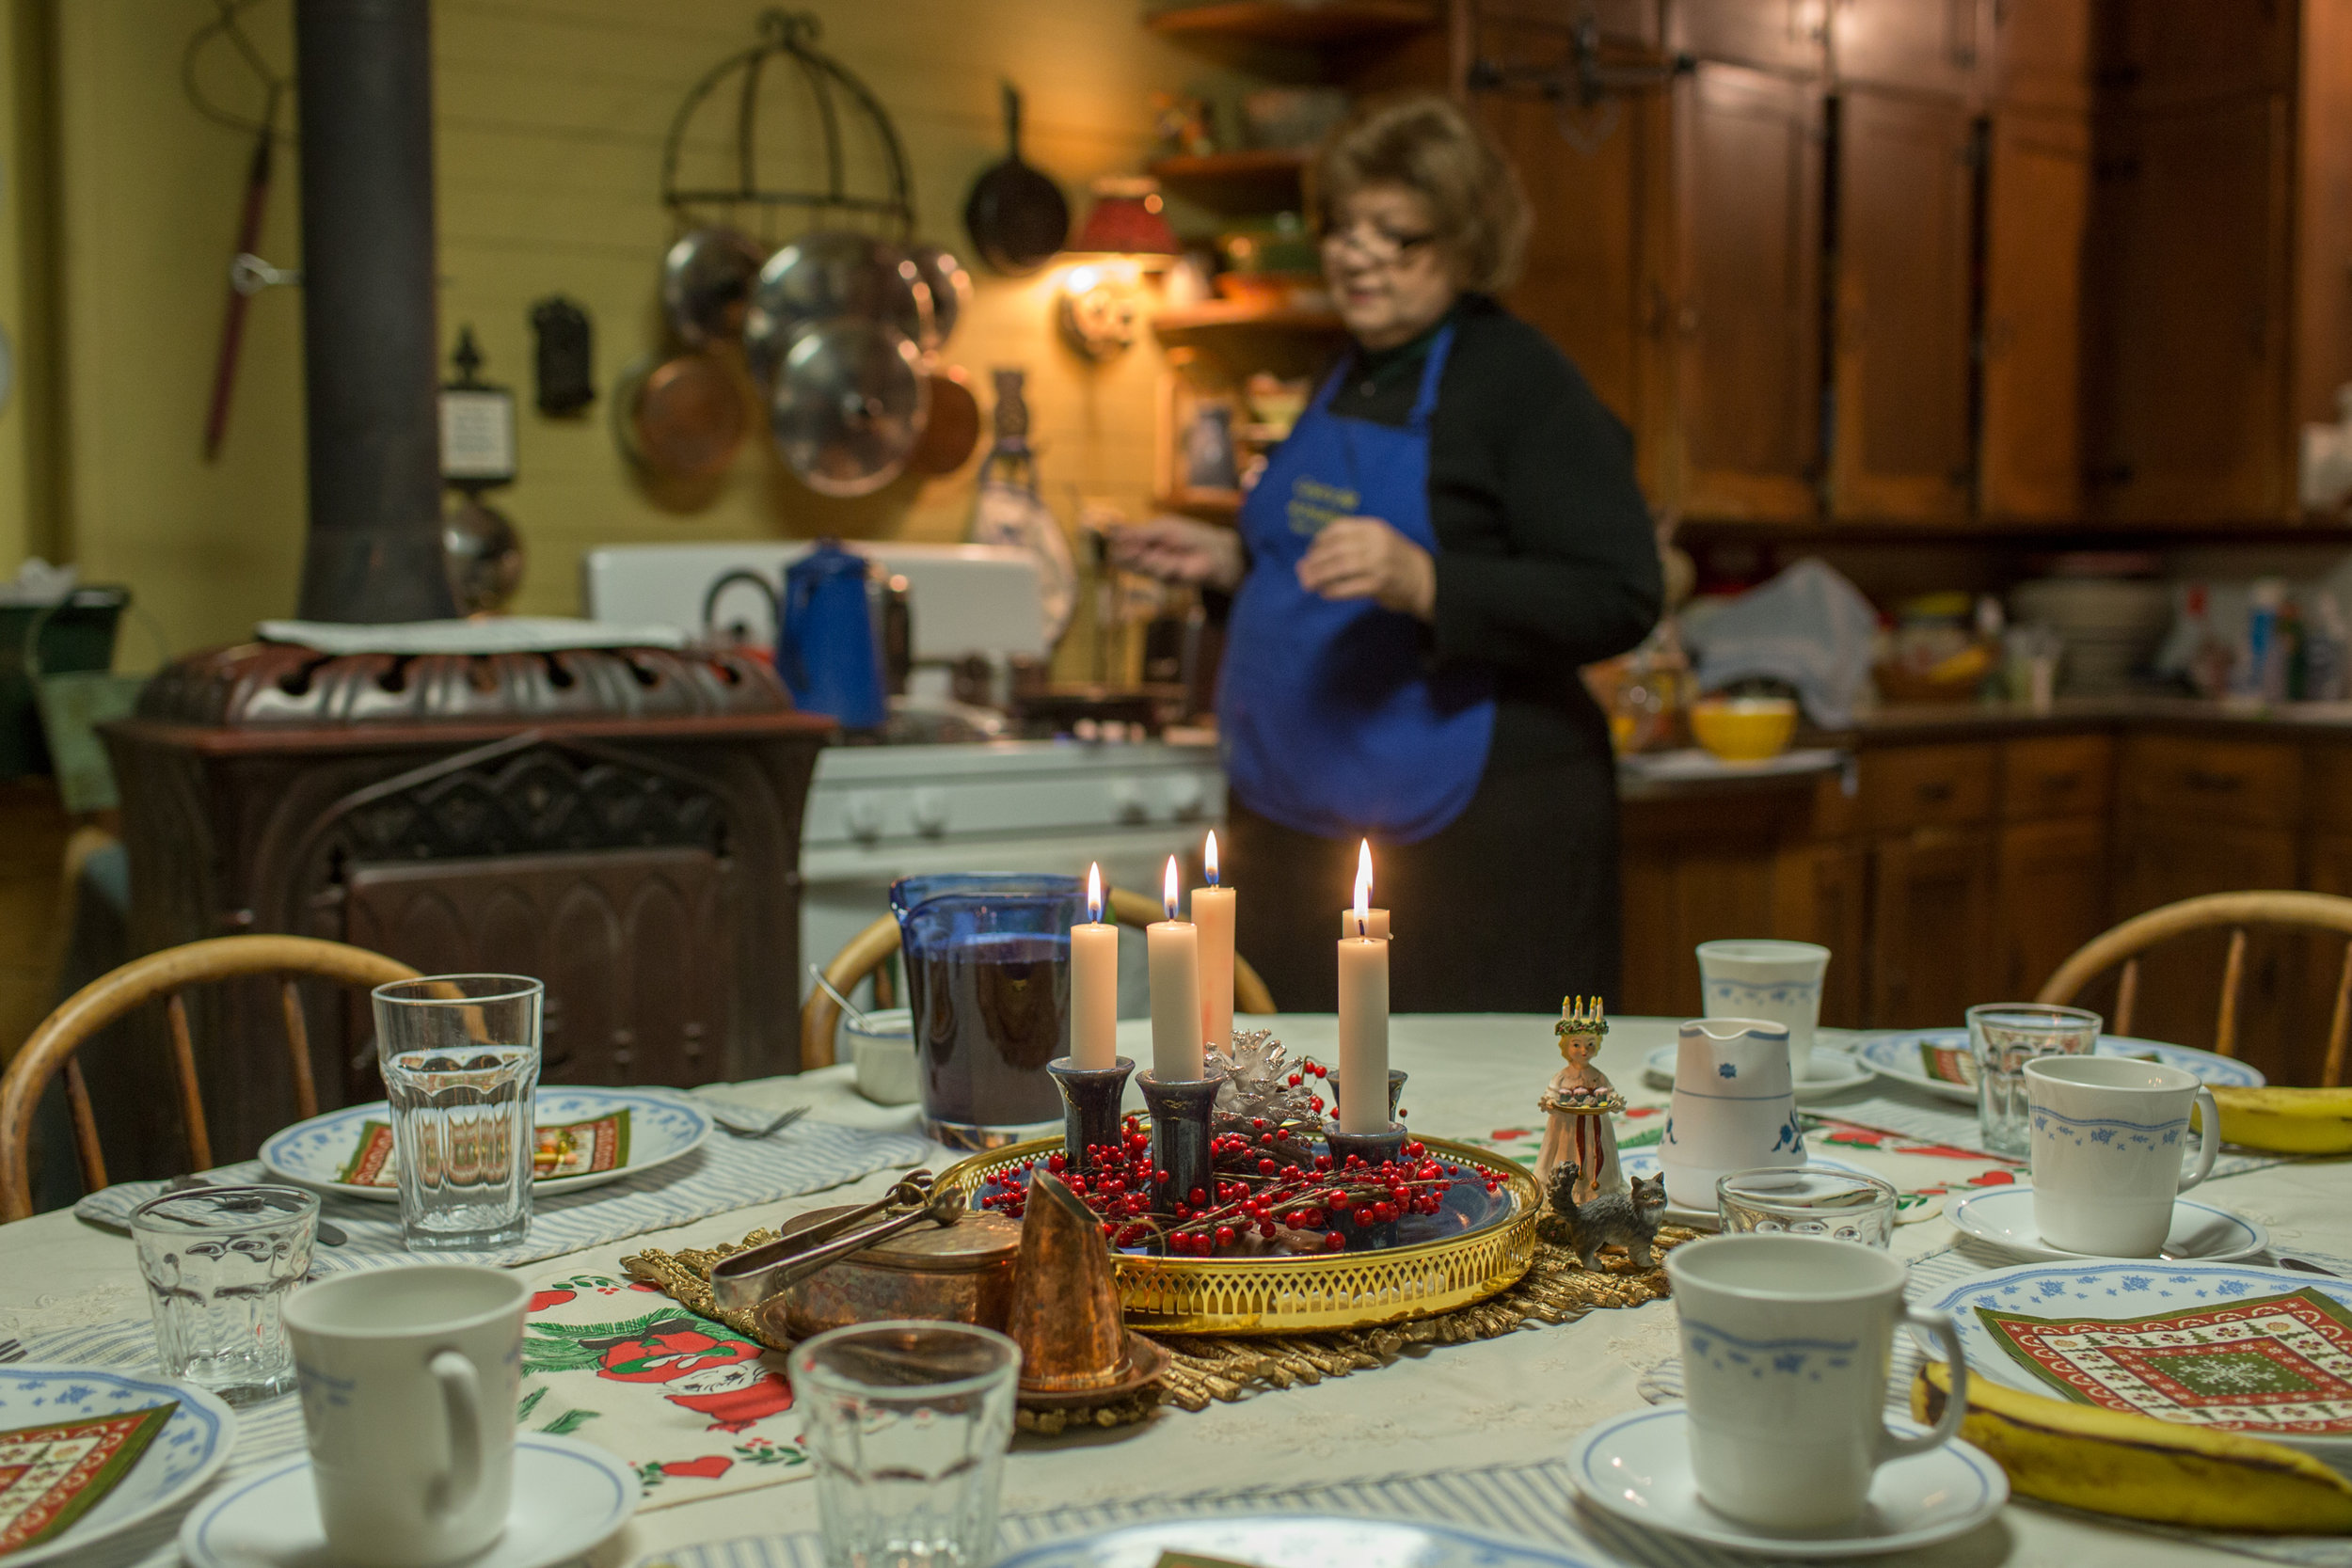 Host, Sally, prepares a Swedish inspired breakfast for her guests complete with old world Swedish Egg Coffee and a table setting celebrating St. Luccia Day. She runs this bed and breakfast in the home she grew up in, an original immigrant farm house from 1948. She is a self-proclaimed pilar in the Swedish community, very involved in the county, and inspired to continue her family's Swedish traditions. Owner of the BnB, she also guides tours in the Chisago area focused on Swedish history, as well as guides tours to Sweden. Swedish speaker.